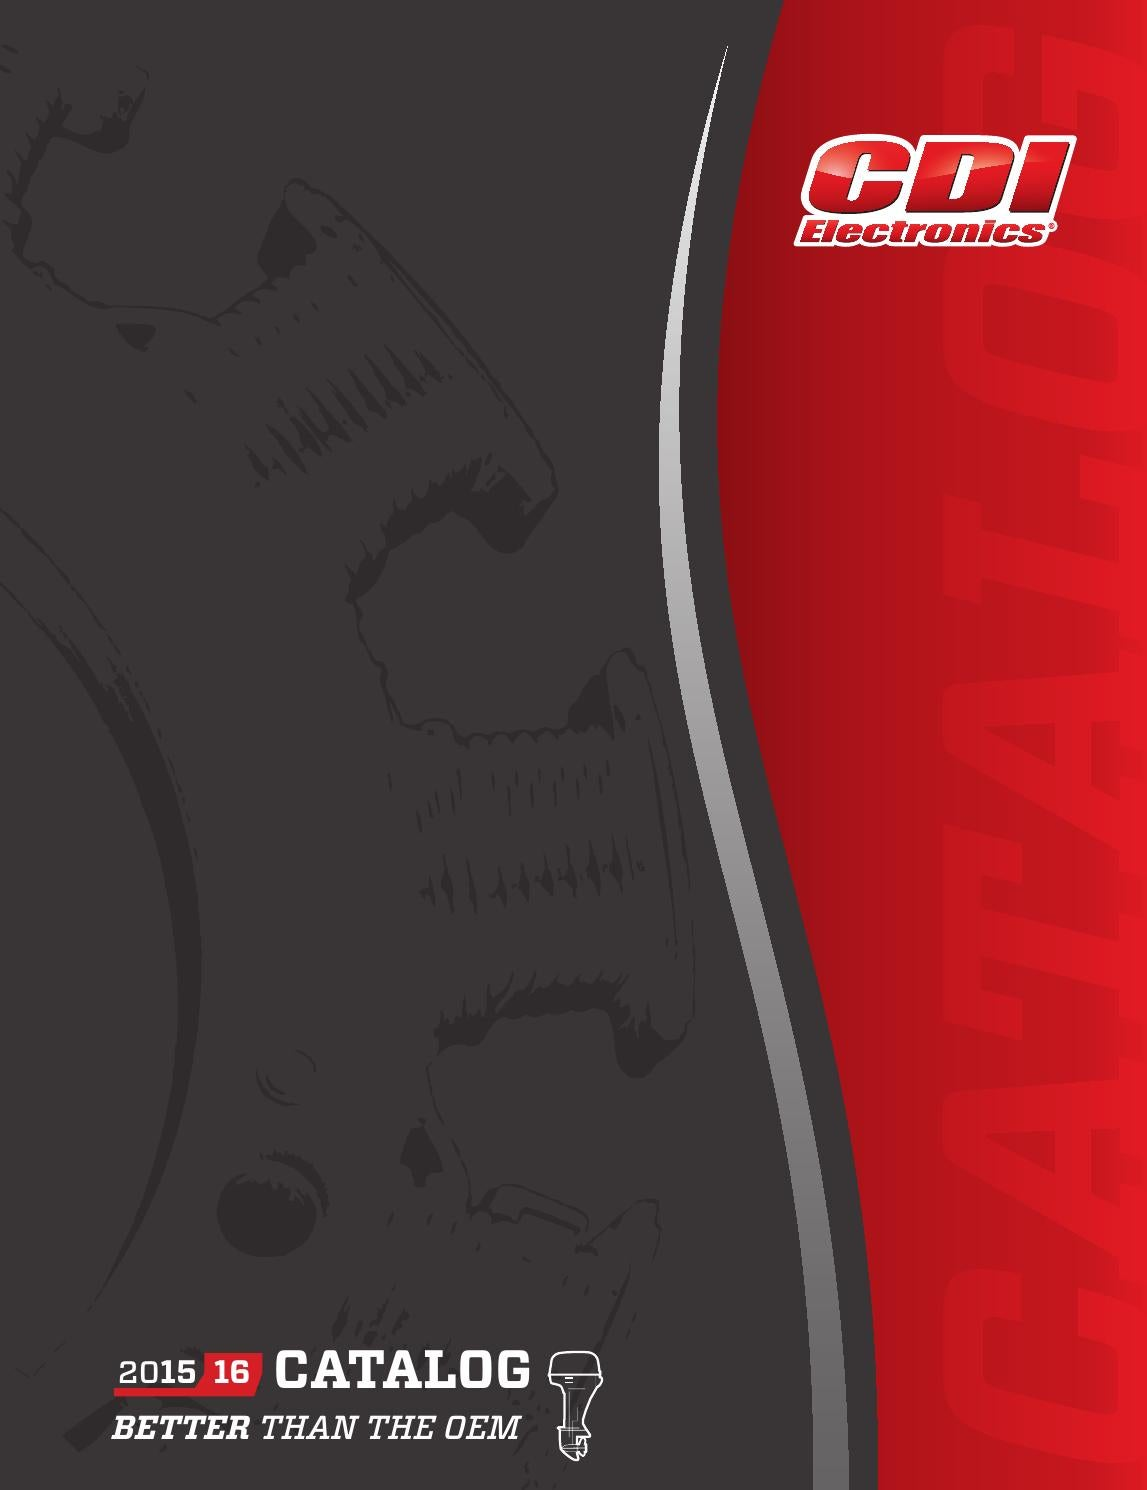 2015 2016 Cdi Electronics Catalog By Wiring Diagram Evinrude E Tec 40 Issuu